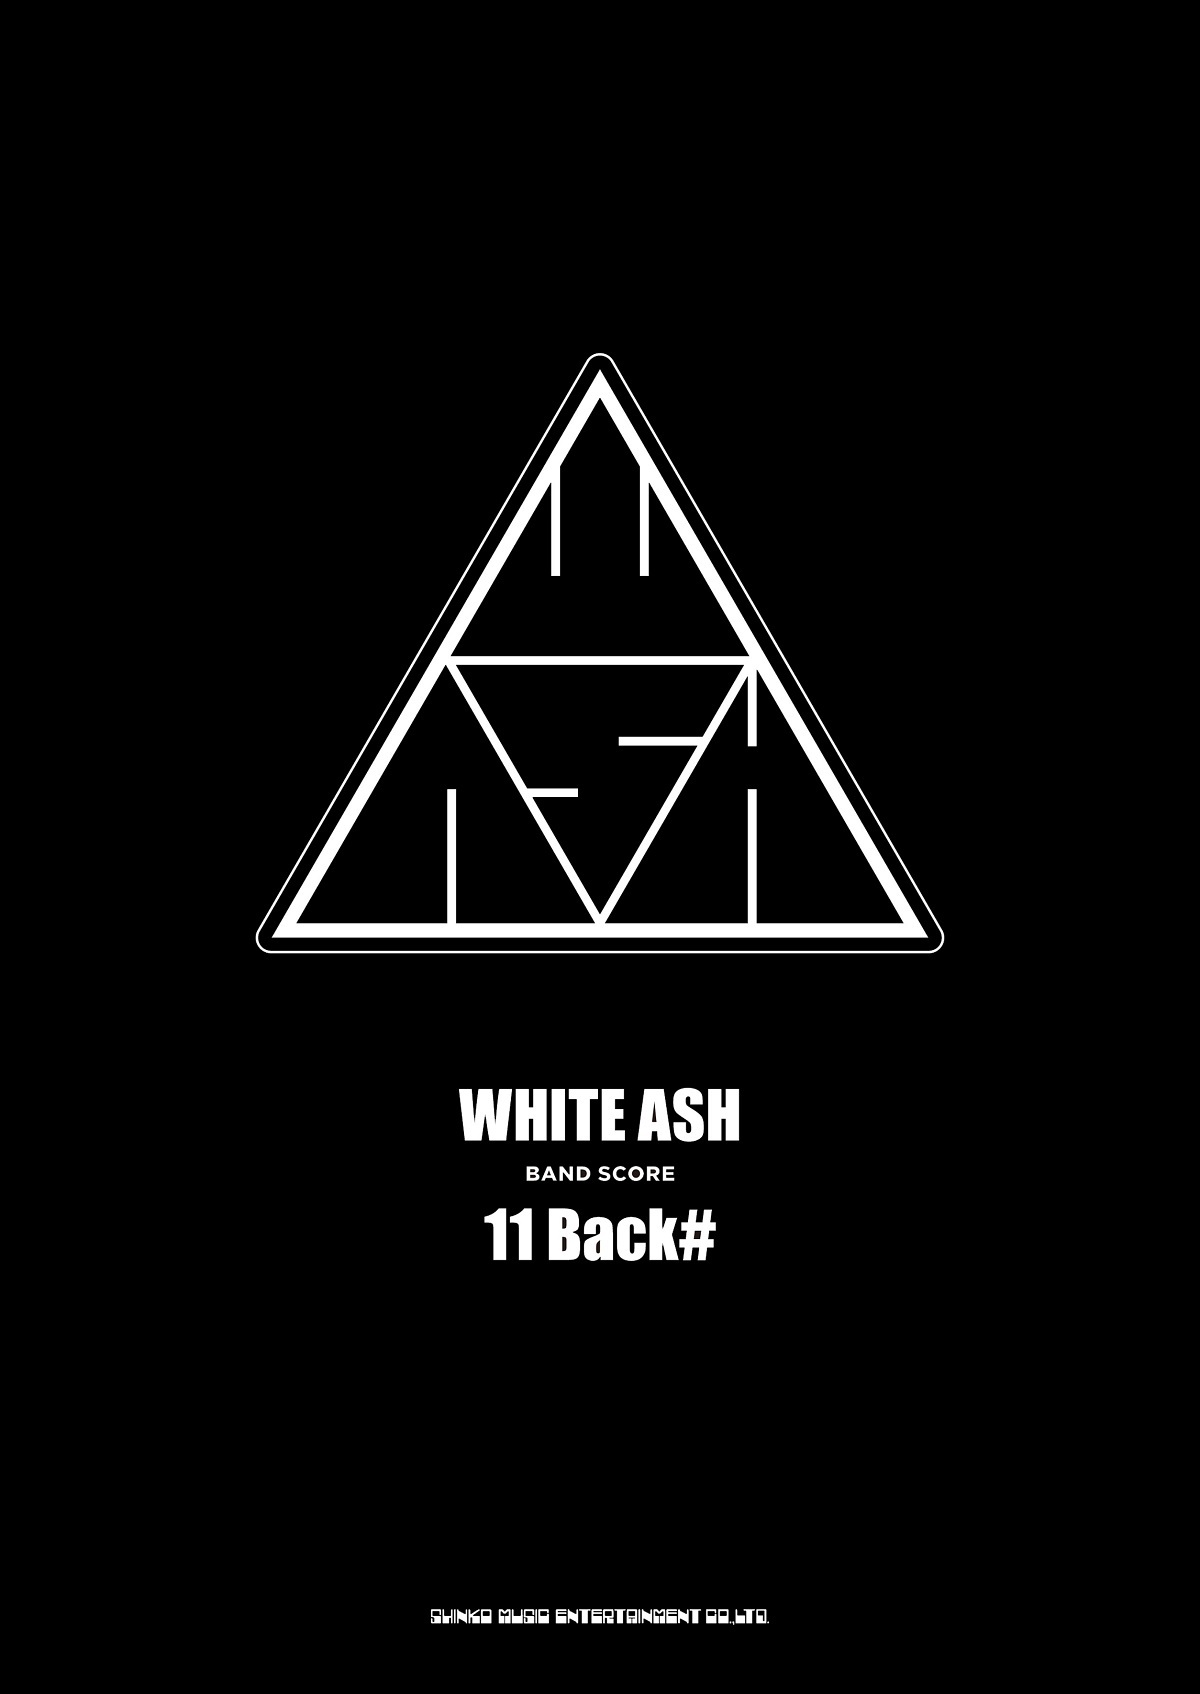 WHITE ASH BAND SCORE「11 Back#」